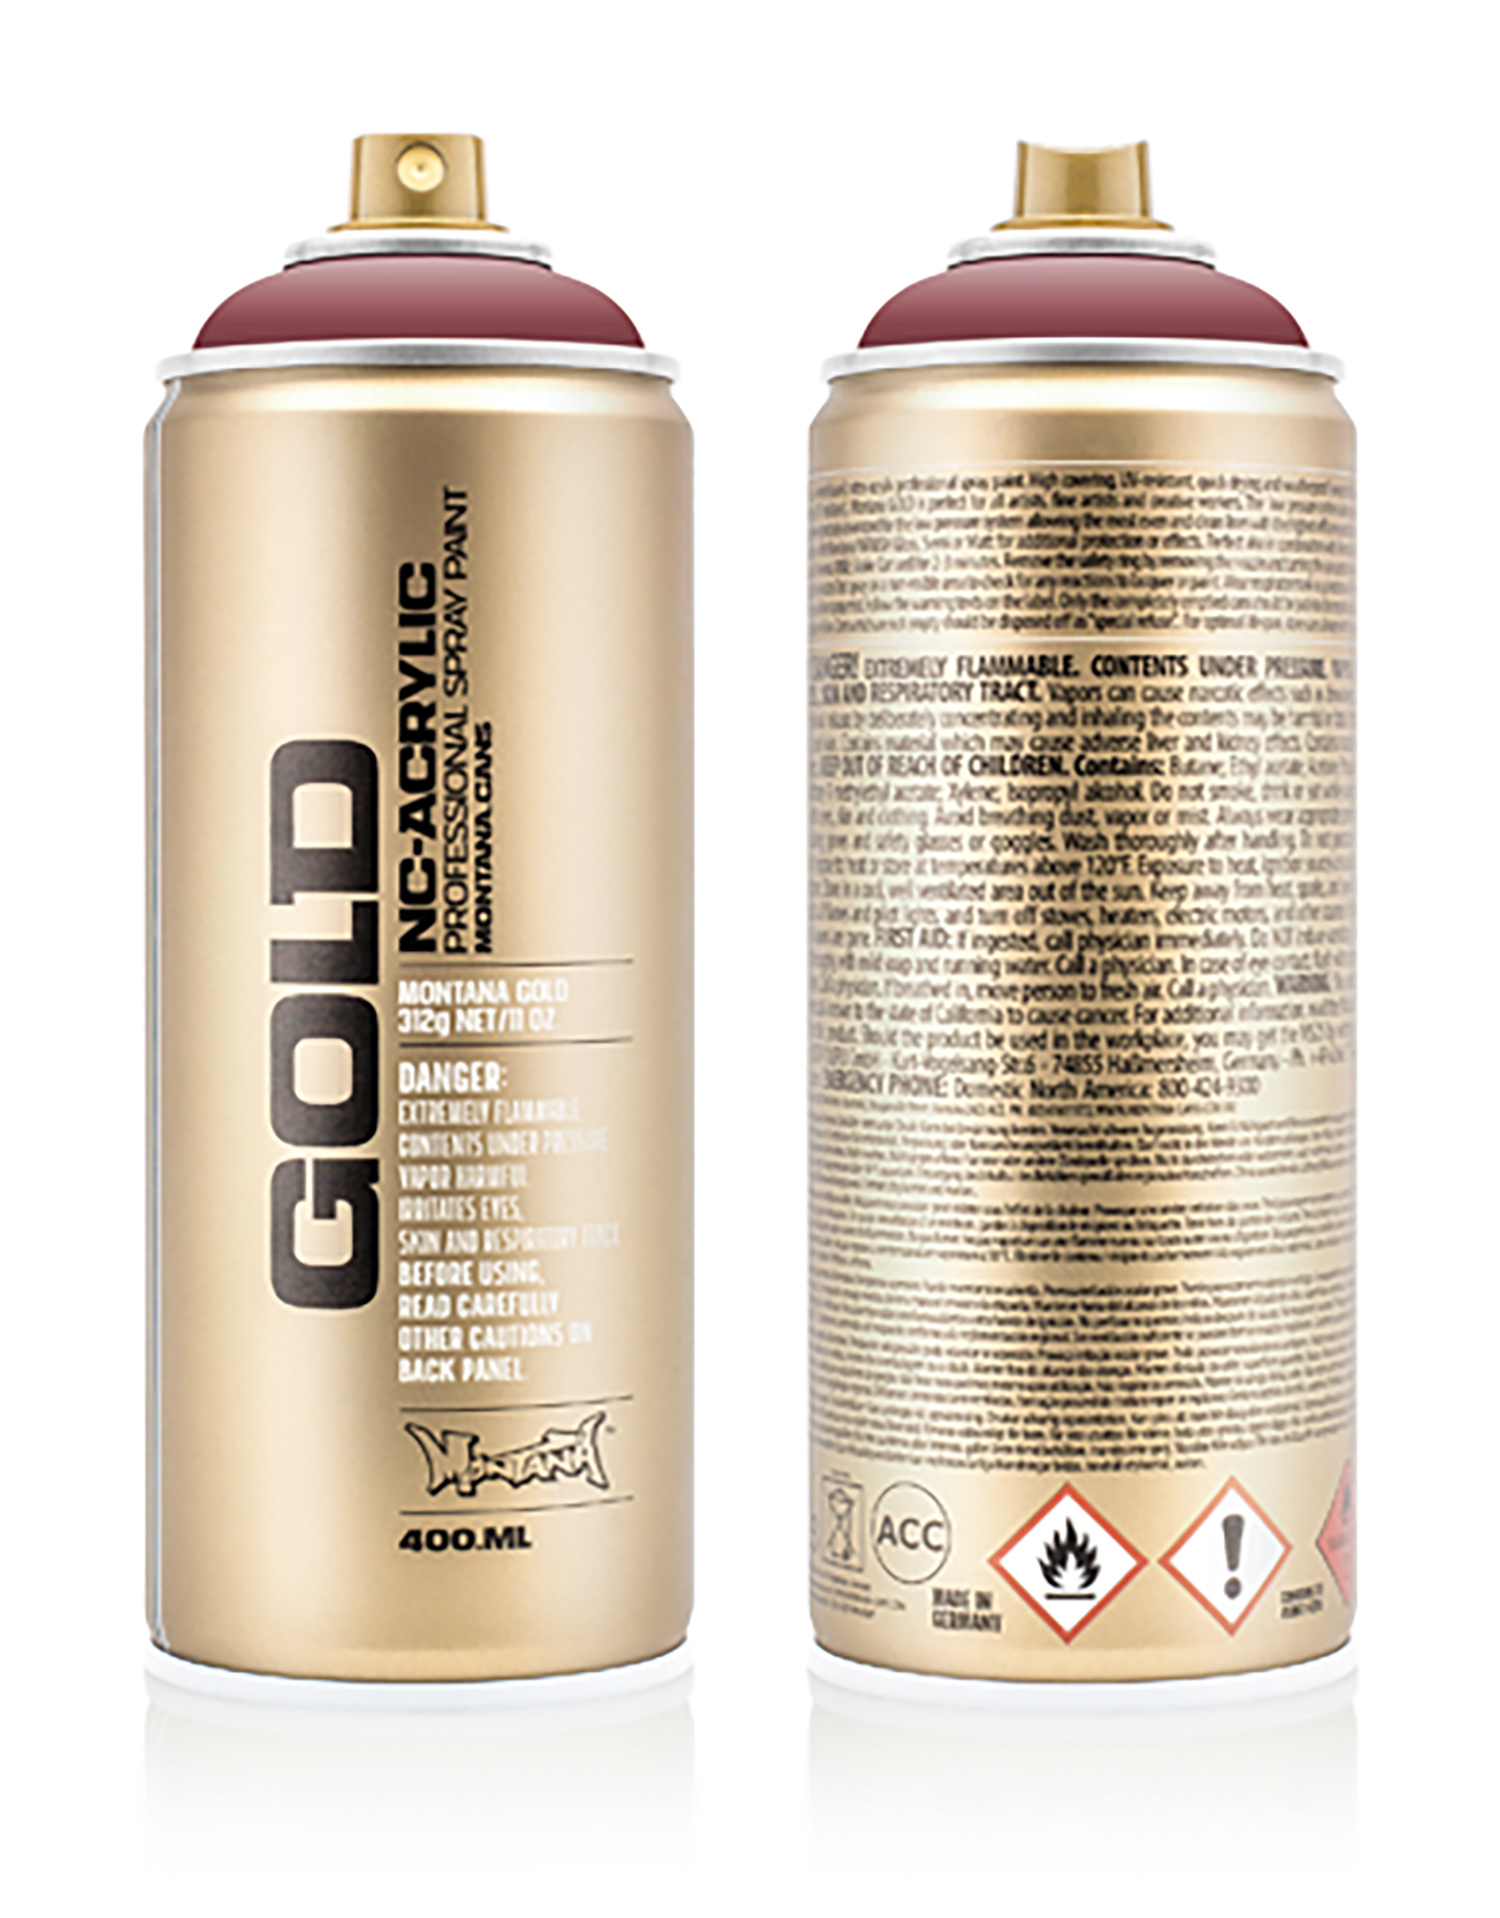 MONTANA-GOLD-SPRAY-400ML-G-8170